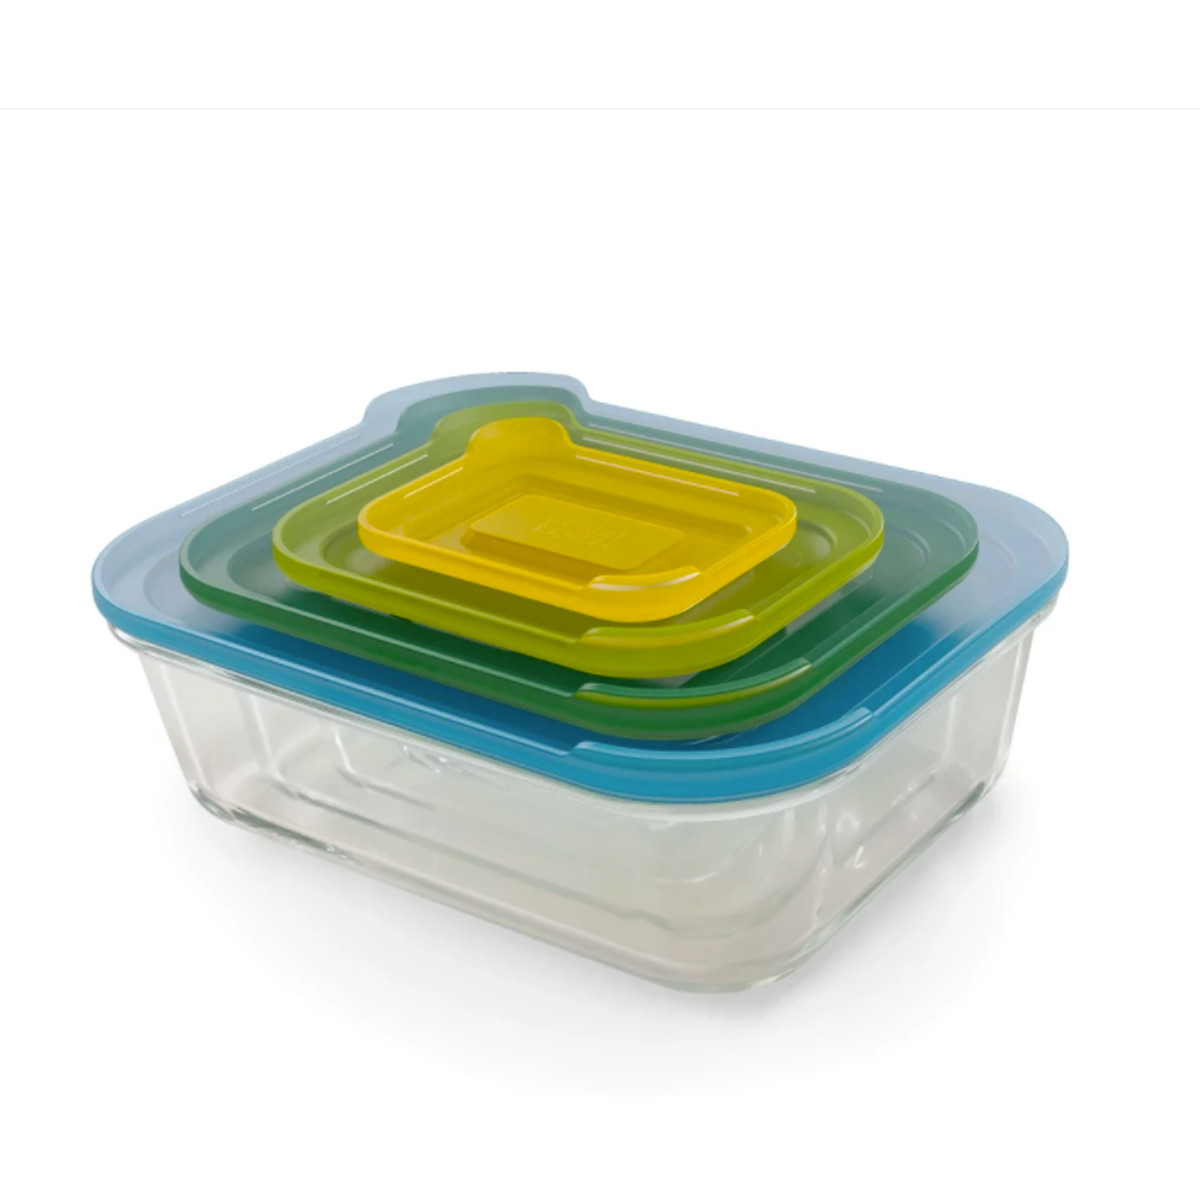 Glass food storage containers wtih plastic lids photo